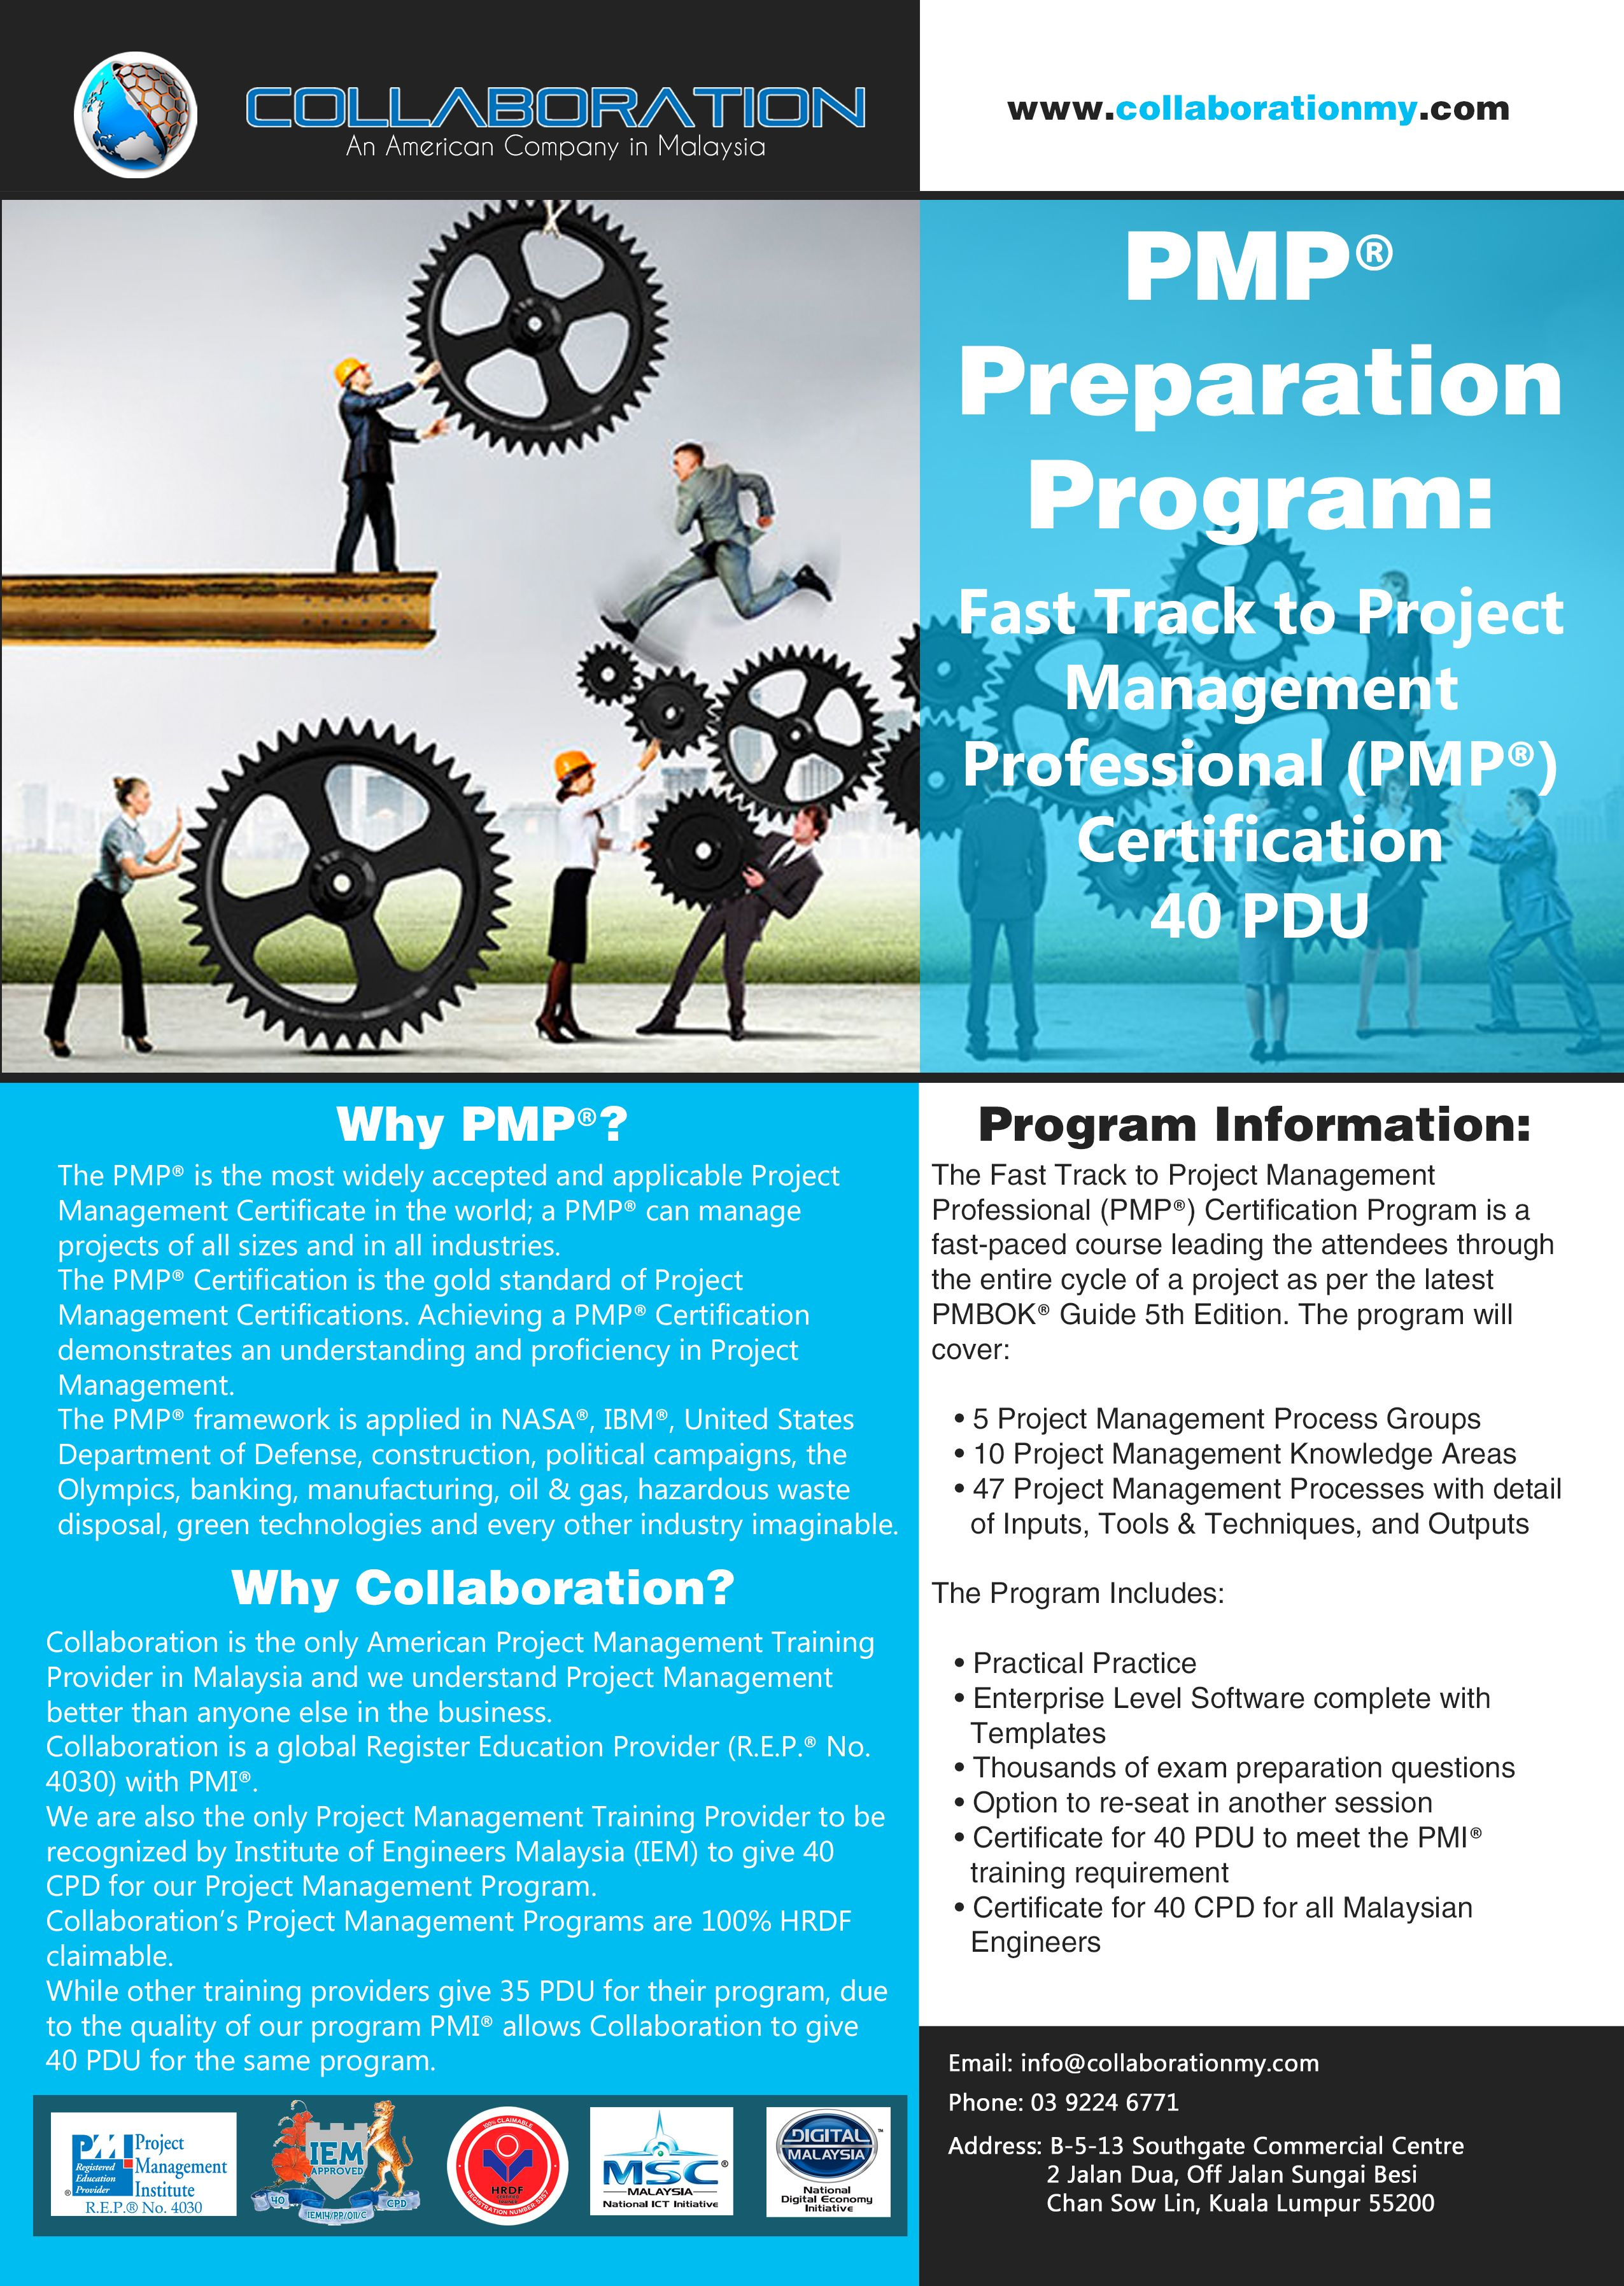 Our pmp preparation program flyer for 2015 pmp pmi rep what the best project management training programs in malaysia taught by project management professionals pmp from the u xflitez Gallery